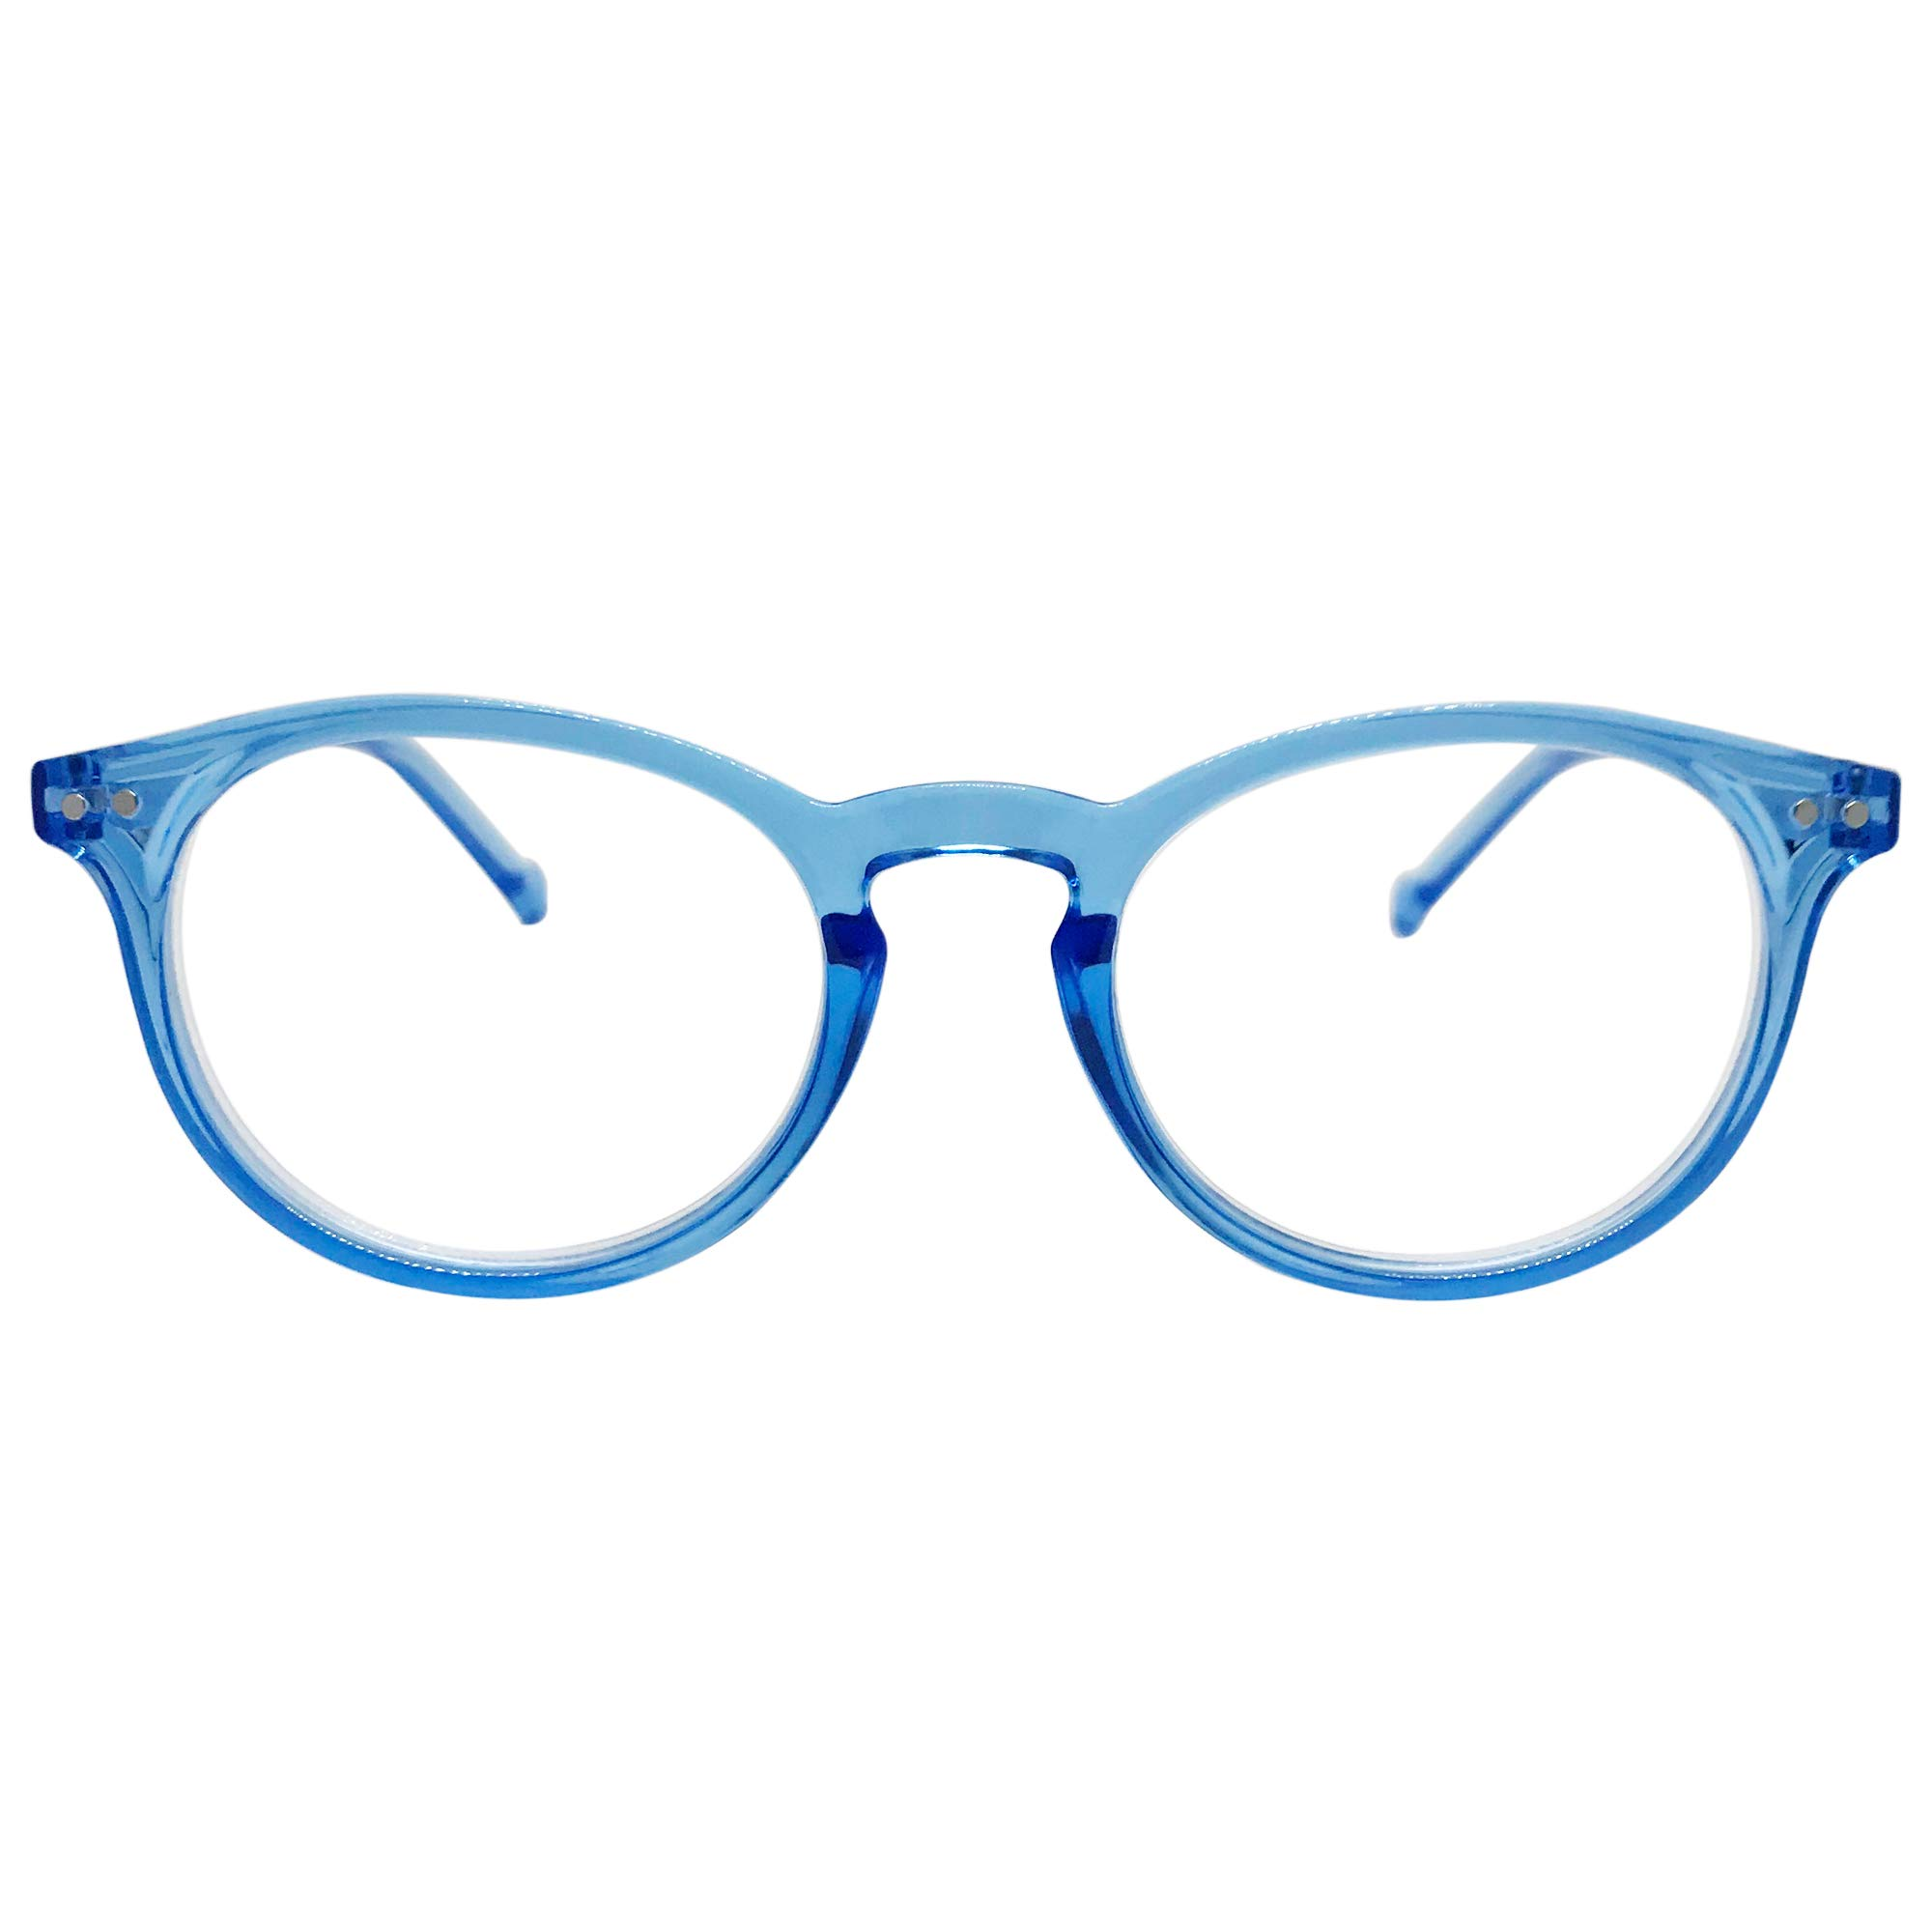 Seattle Premium Reading Glasses (Clear Light Blue, 1.50) by City Sights Eyewear